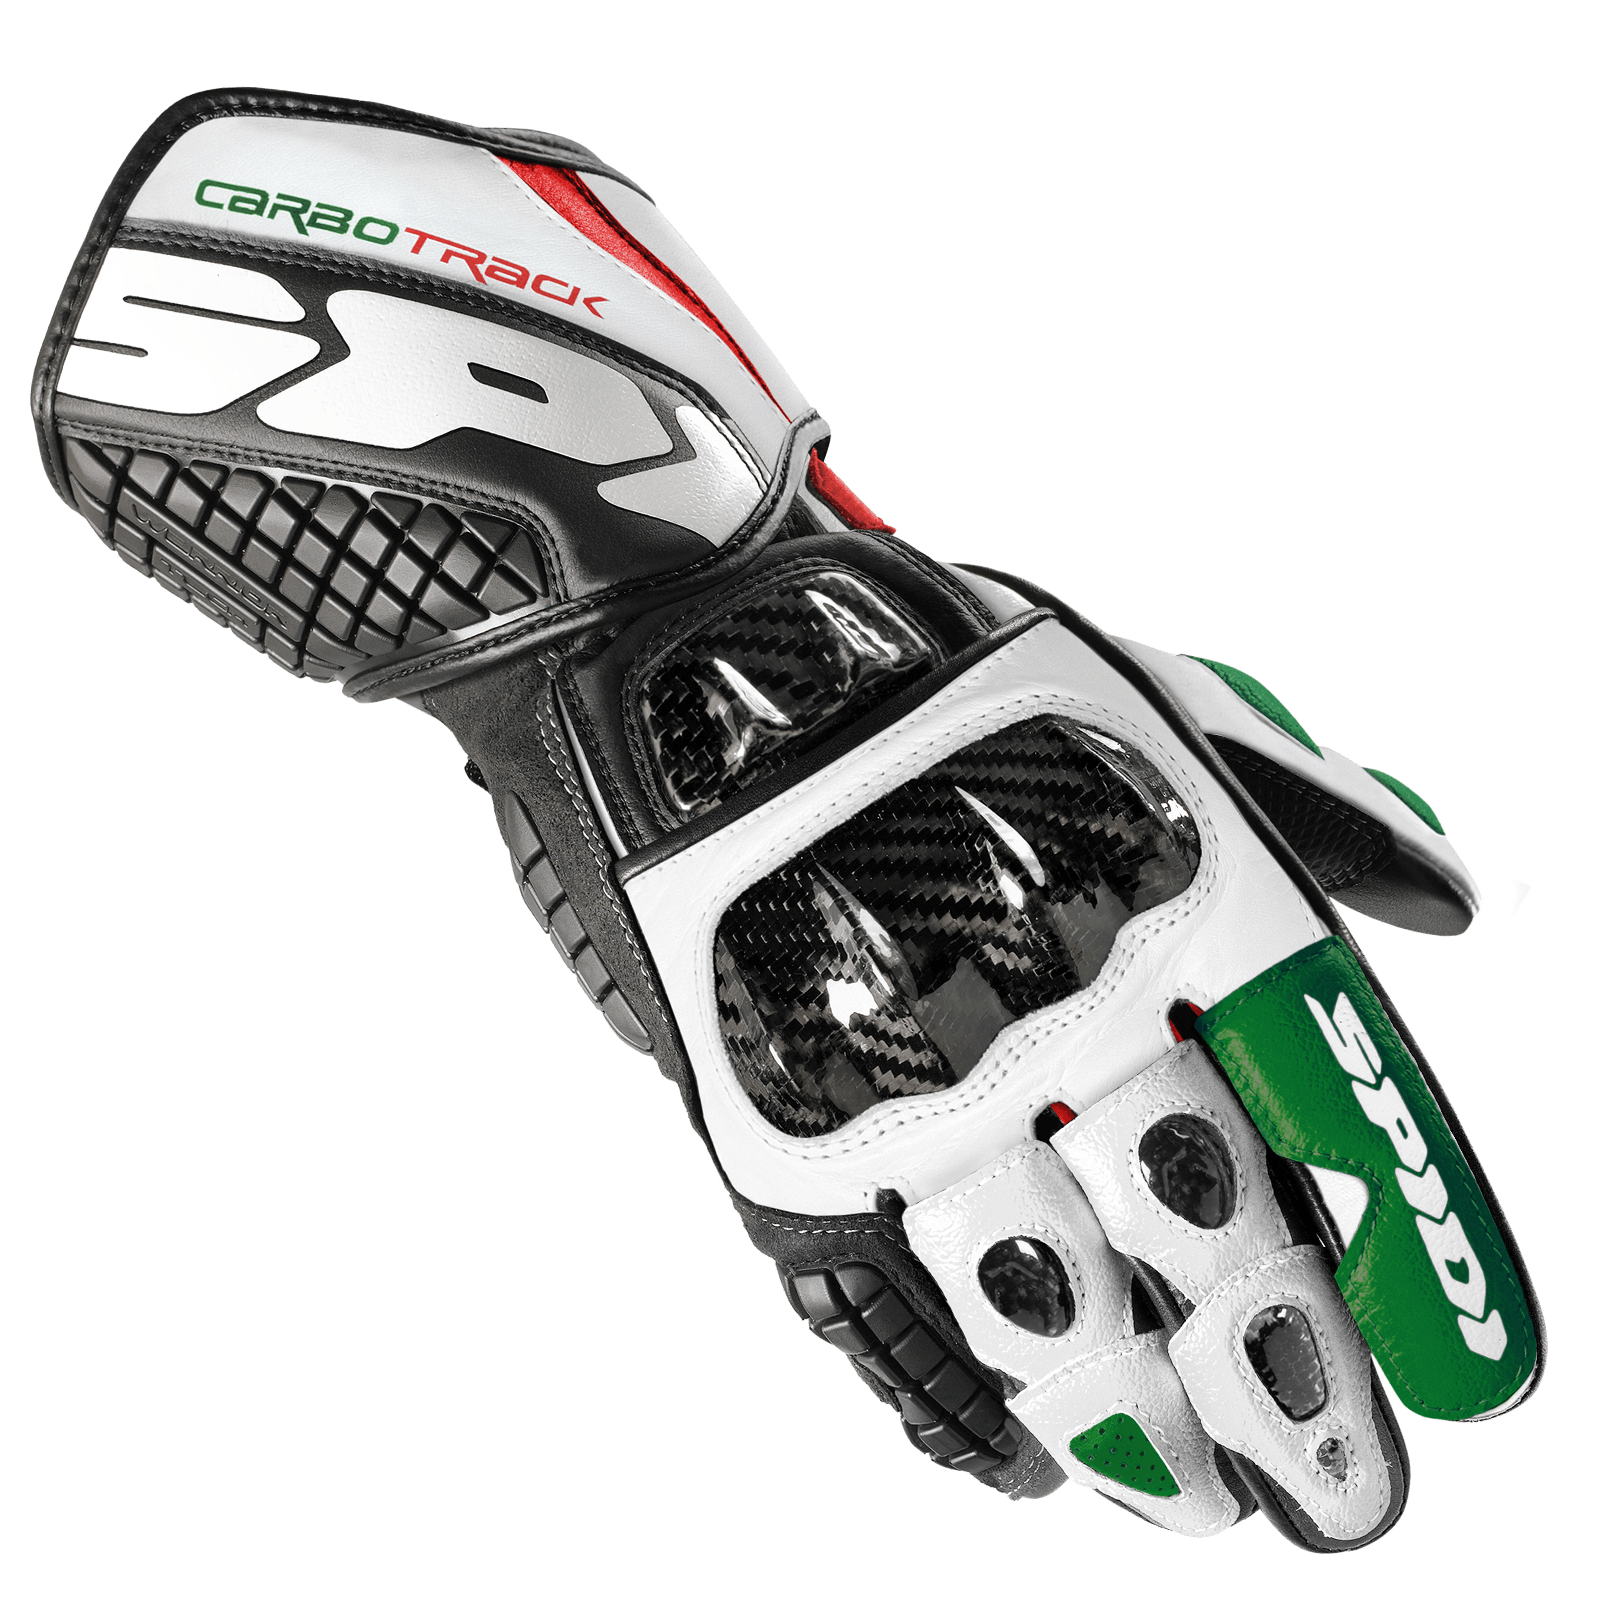 carbo track leather glove